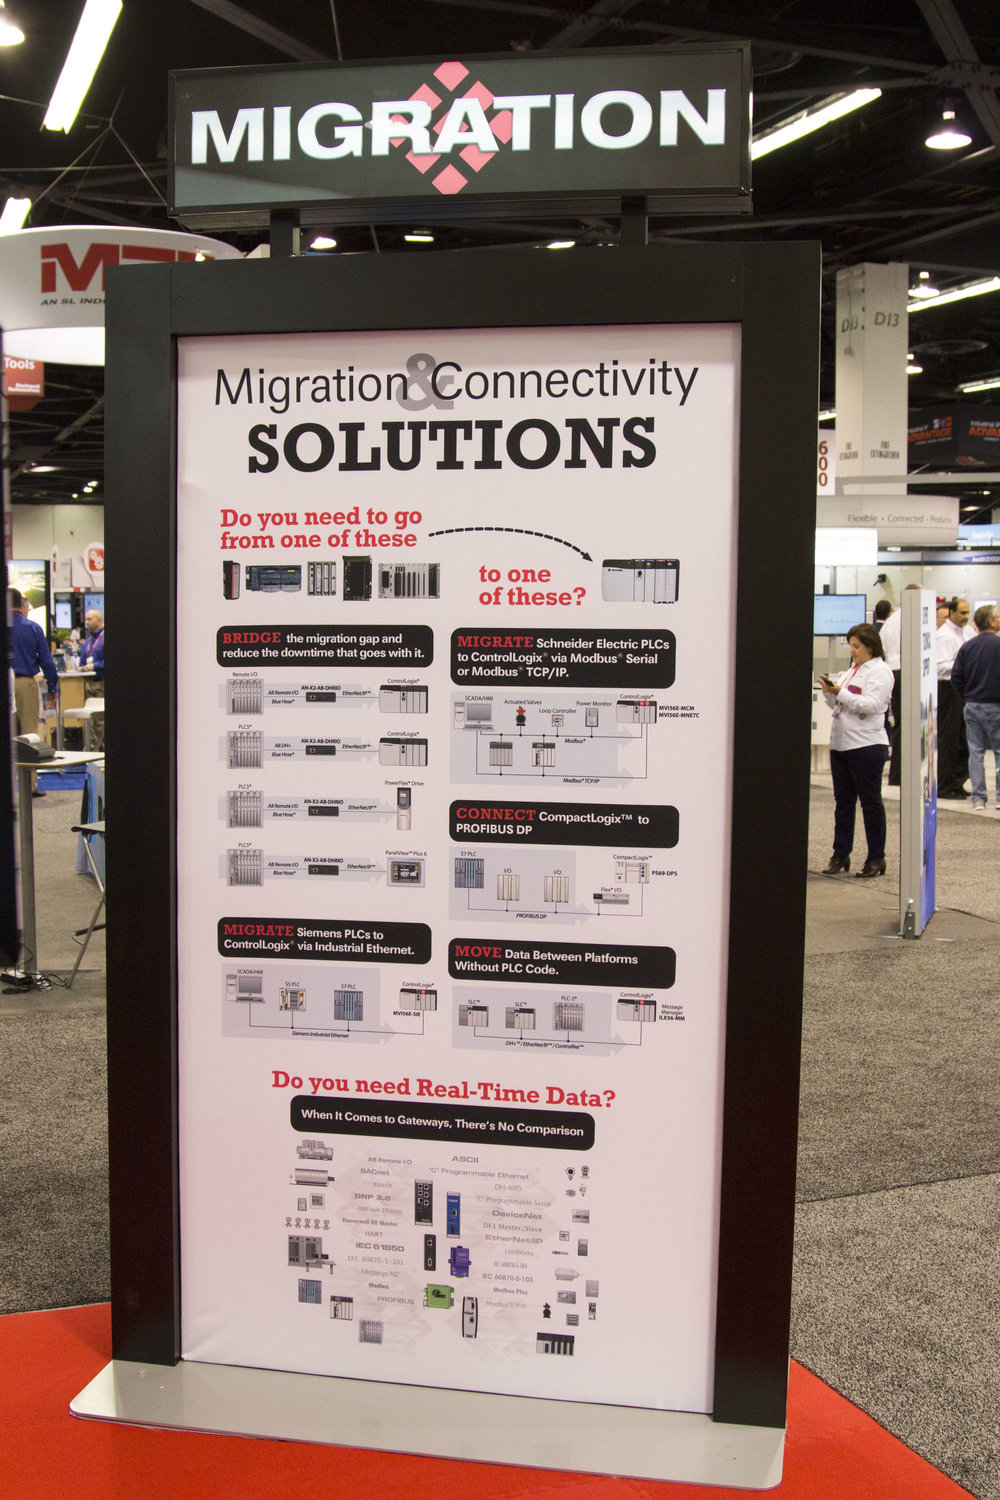 Graphics of solutions